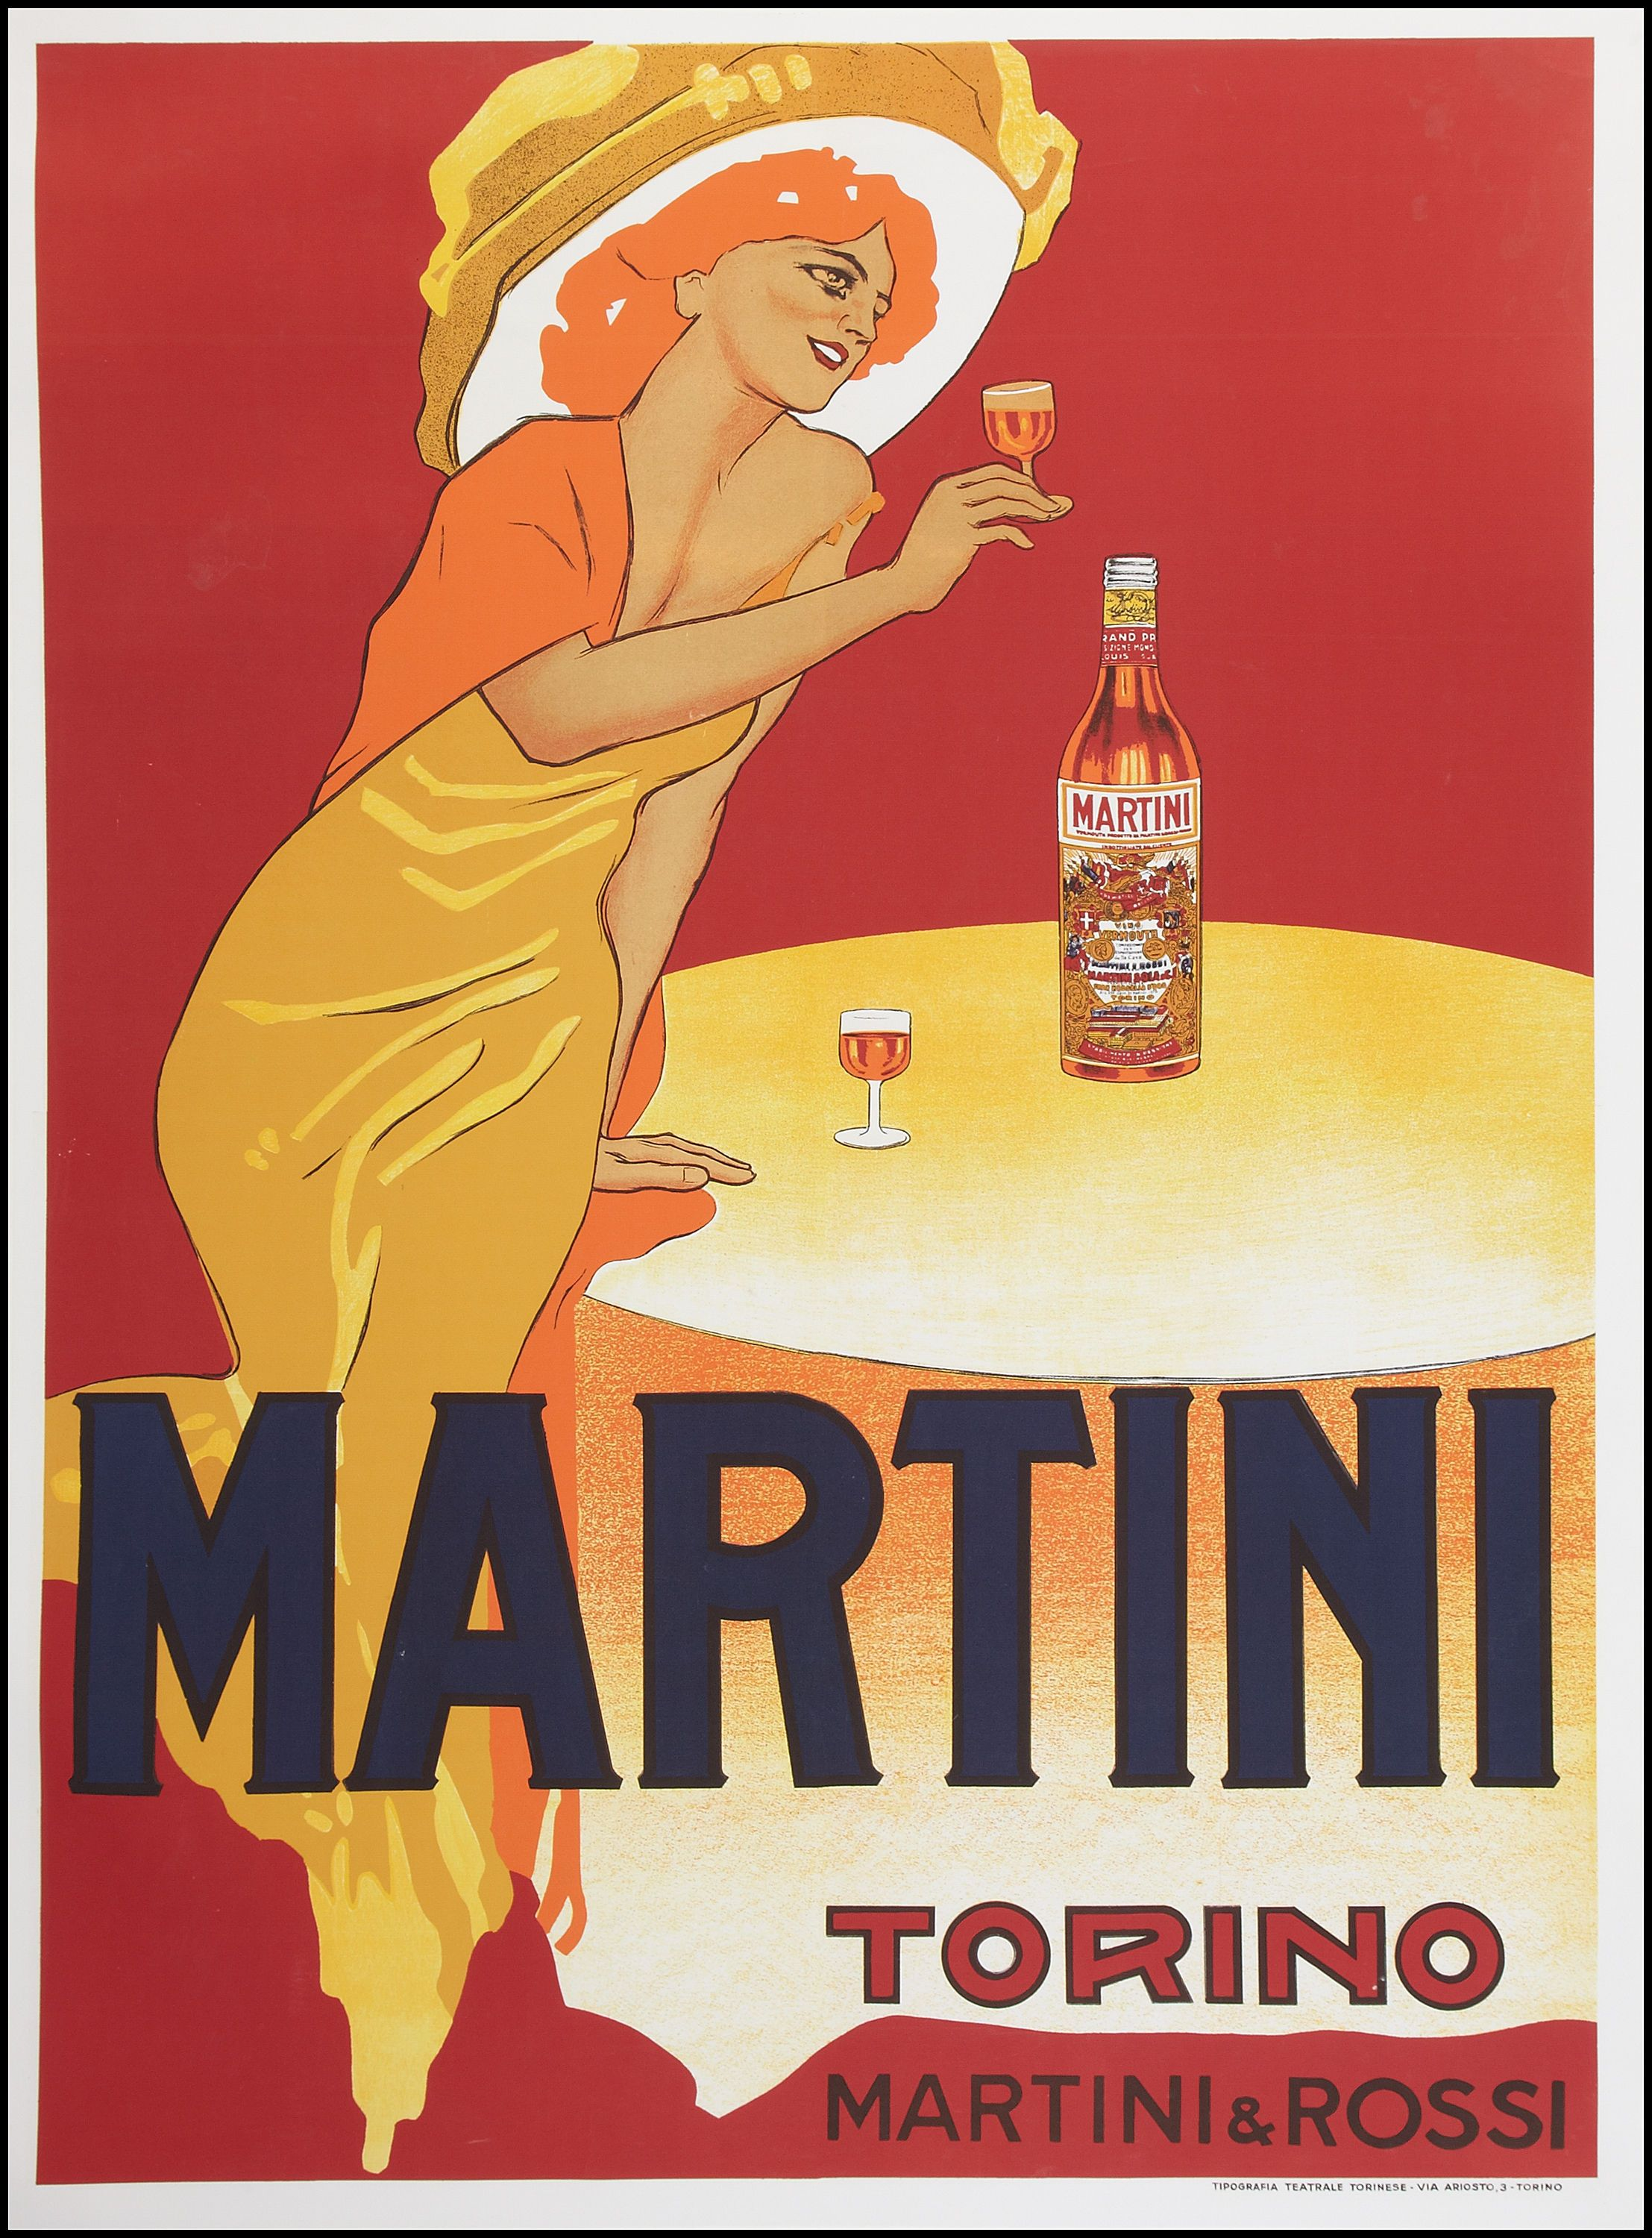 Martini Vintage French Posters Vintage Italian Posters Vintage Advertising Posters